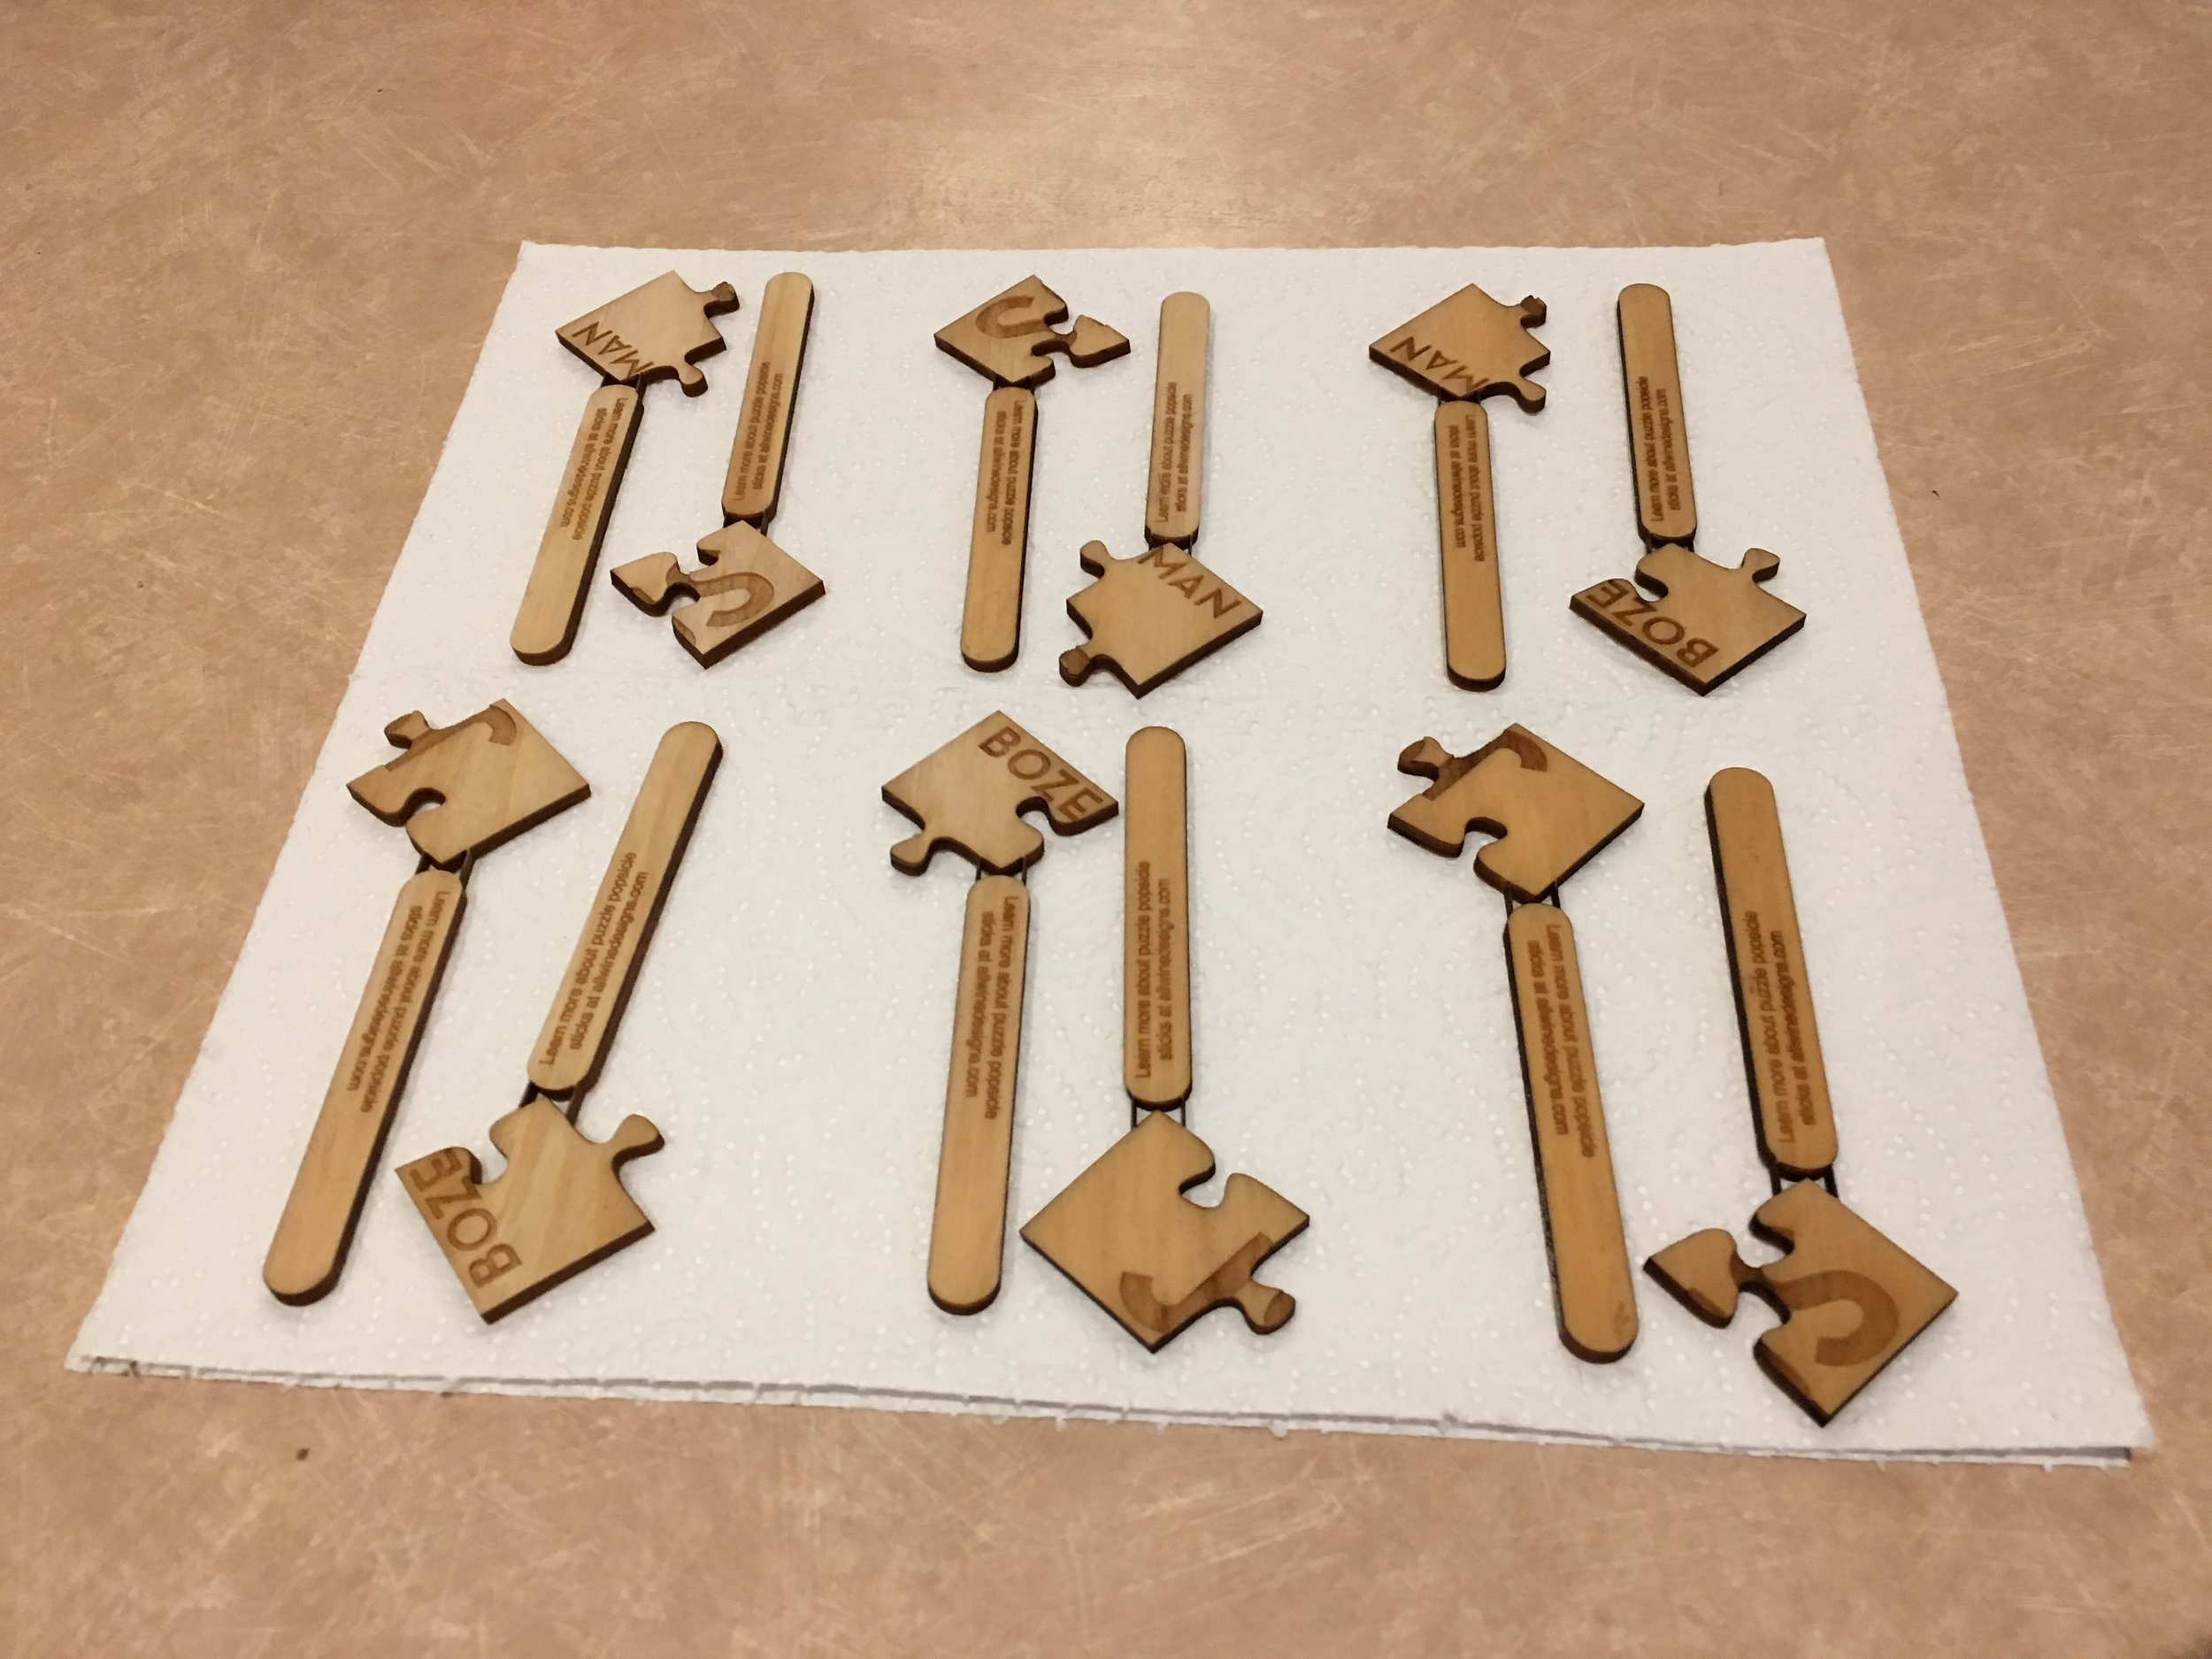 Drying the popsicle sticks after boiling them.